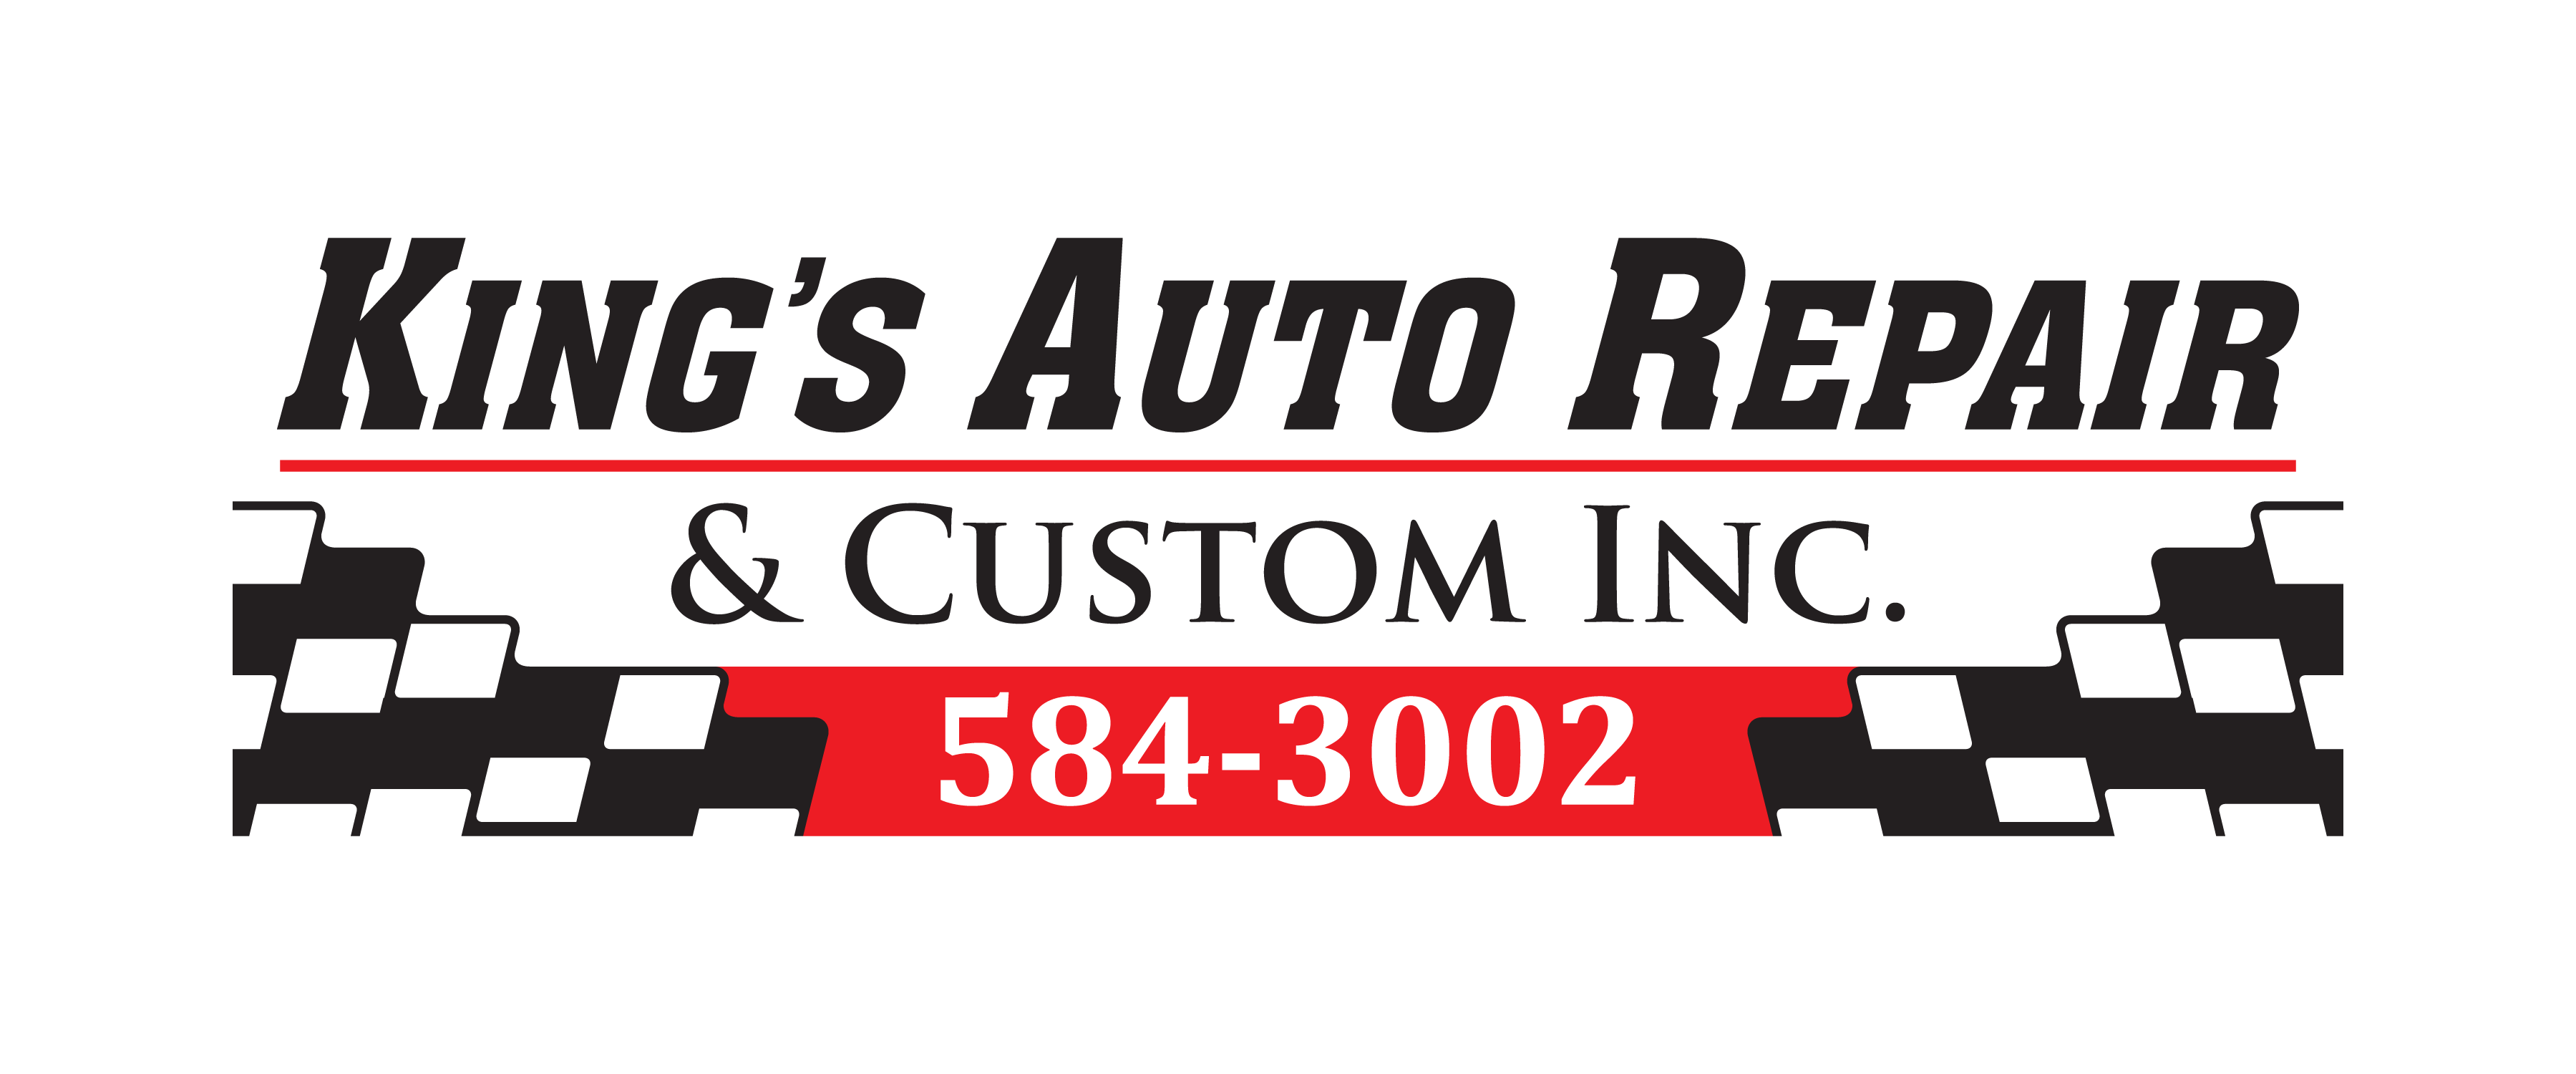 KING'S AUTO REPAIR & CUSTOM INC.